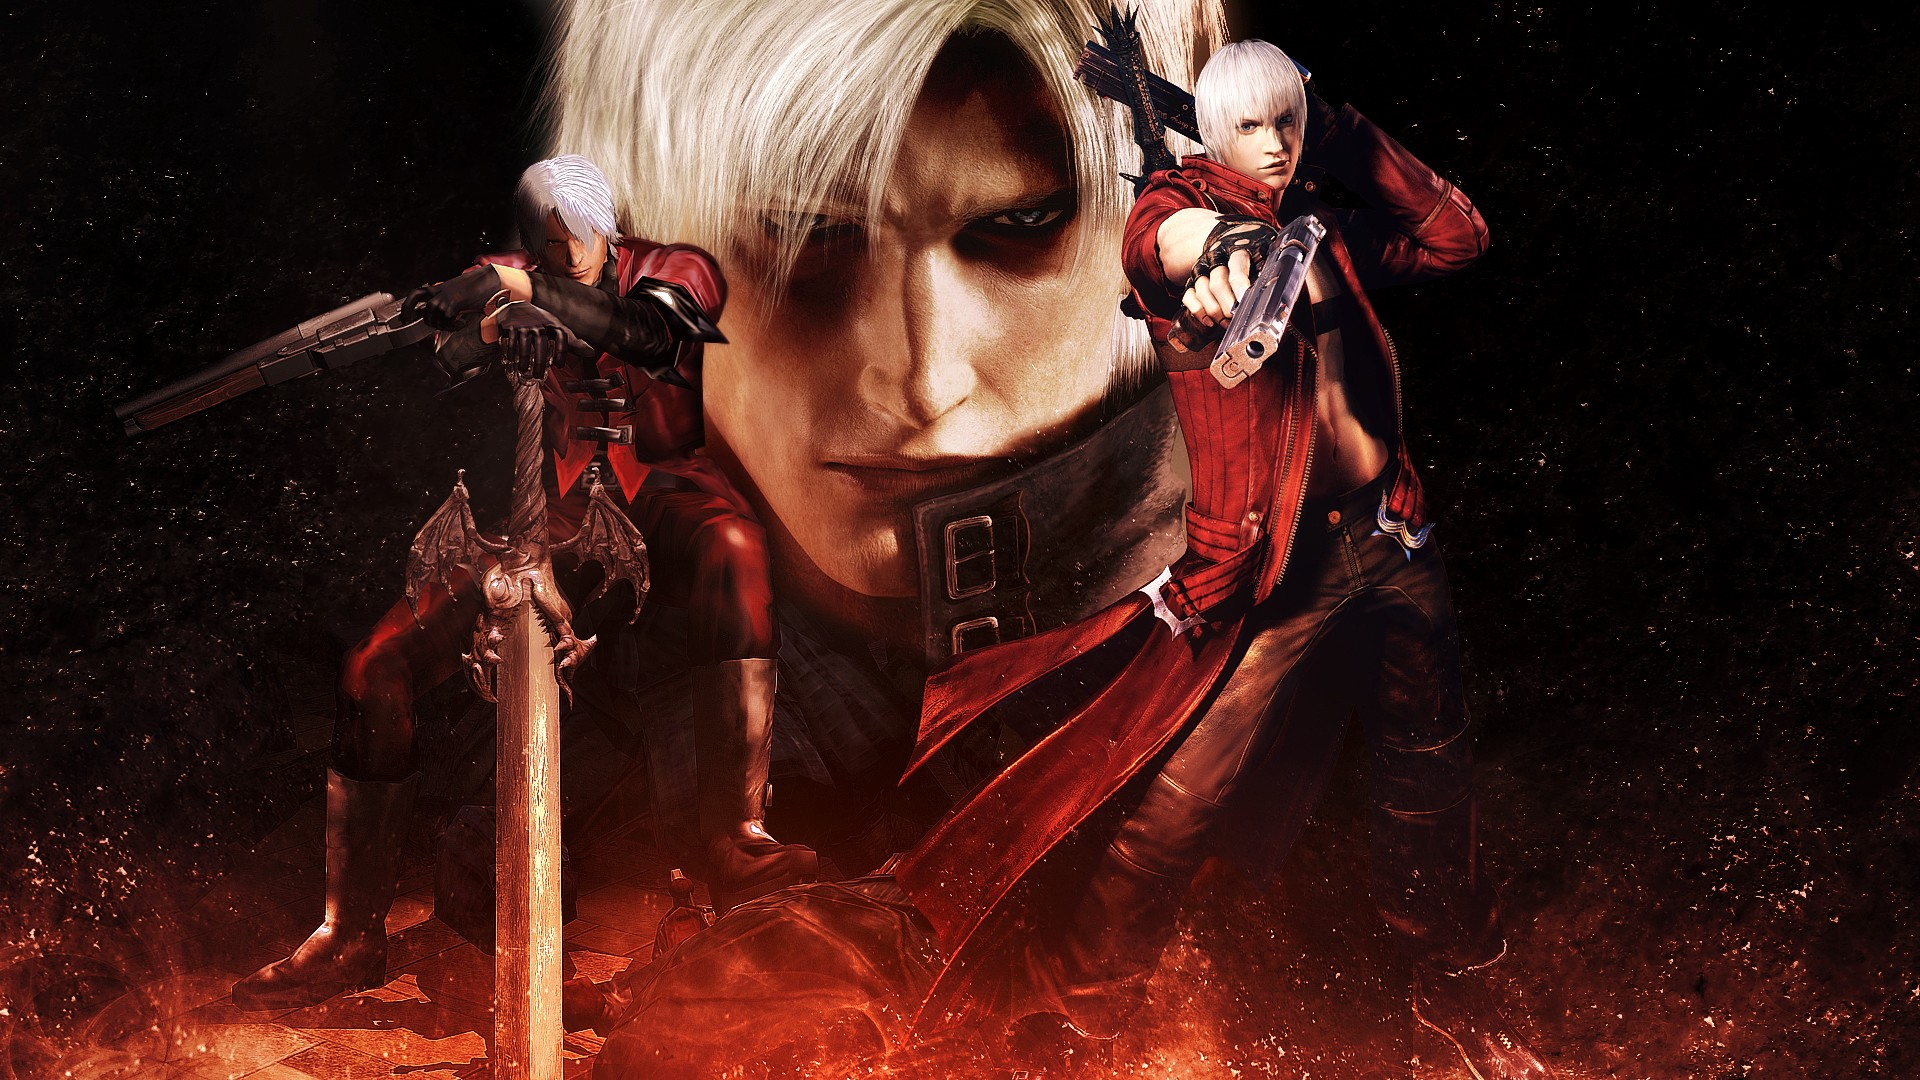 dmc devil may cry 2 wallpapers